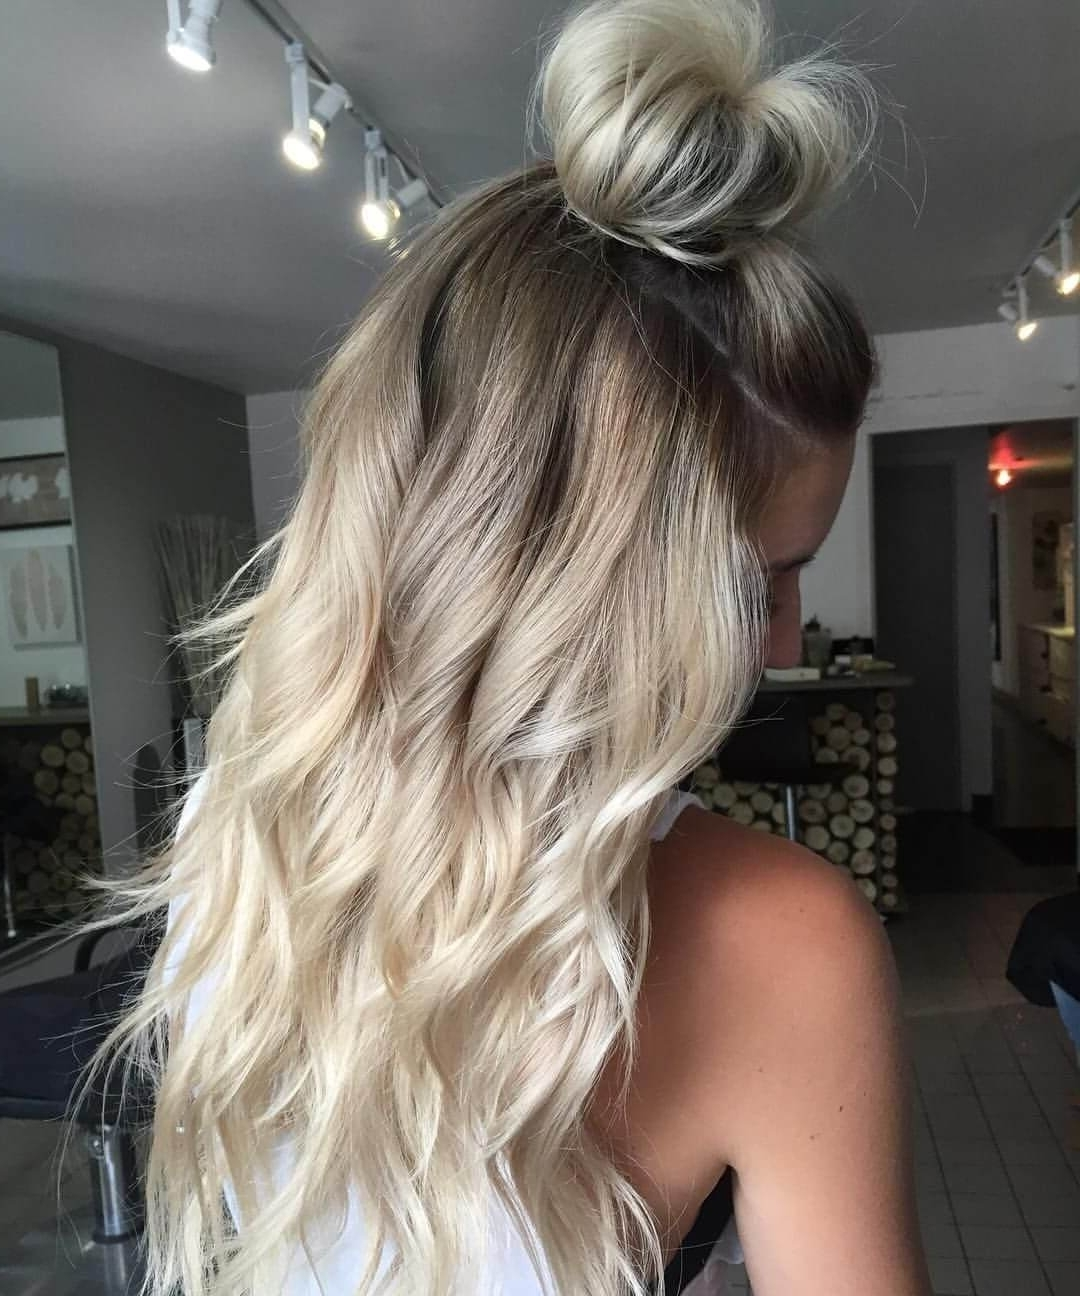 Latest Root Fade Into Blonde Hairstyles For 50 Proofs That Anyone Can Pull Off The Blond Ombre Hairstyle (View 12 of 20)